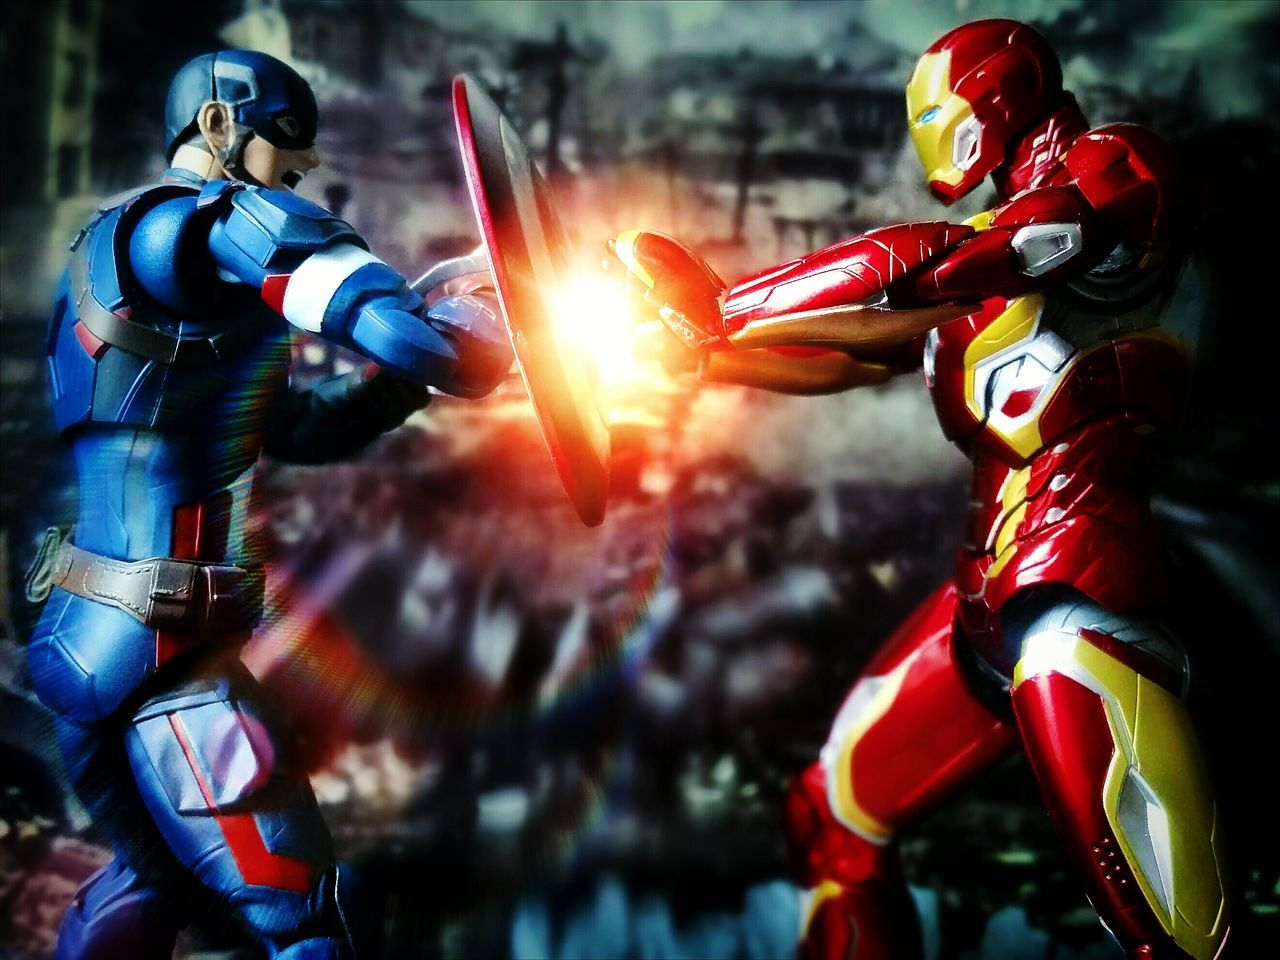 Civil War Super Heroes  Action Figures Toy Photography BANDAI Shf Sh Figuarts Captain America Iron Man Toys Marvel Civil War Tamashiinations Heroes